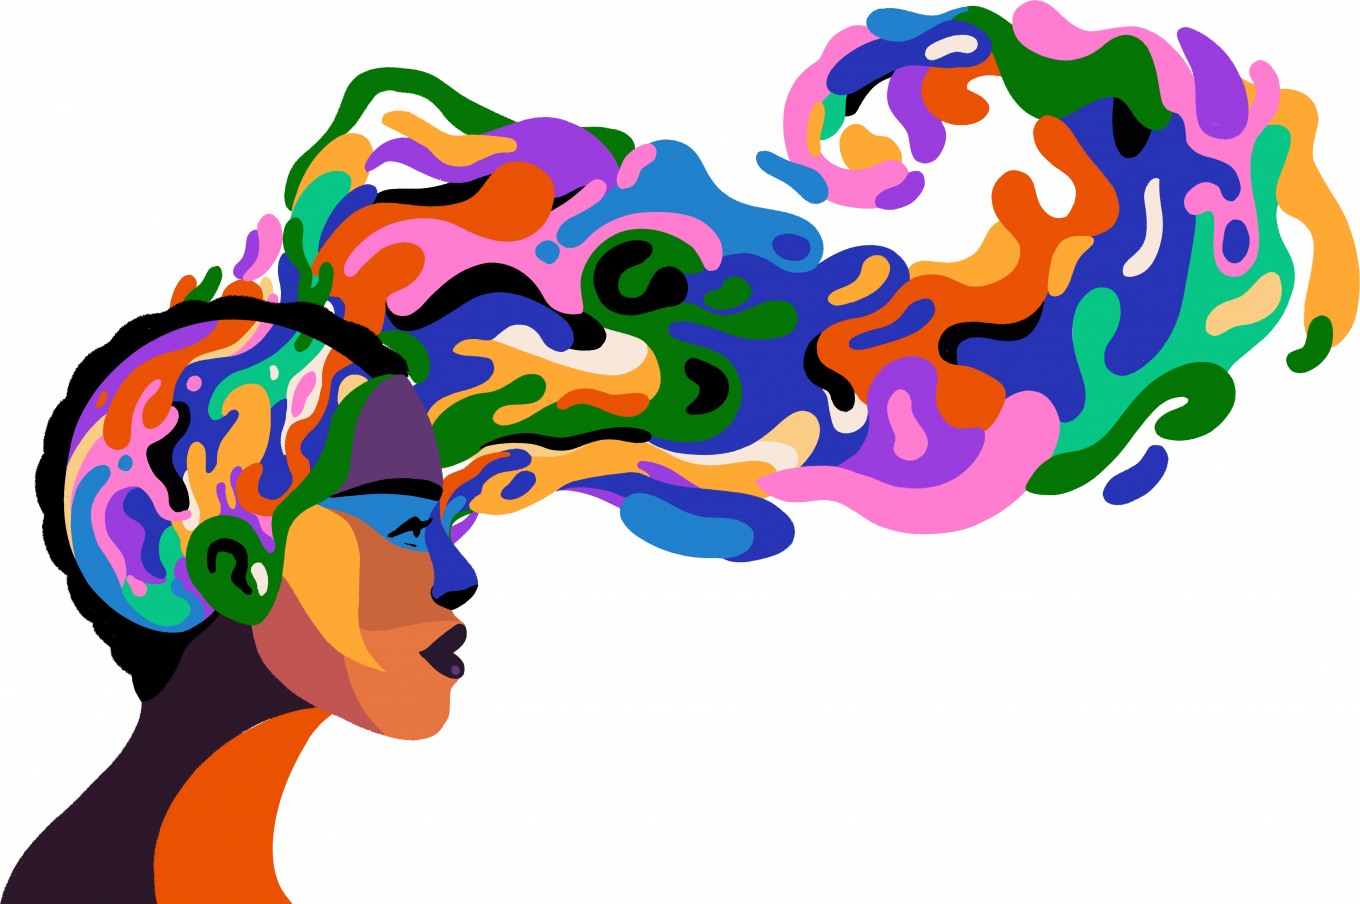 Teach-in on Race illustration of a person's head with colors flowing out